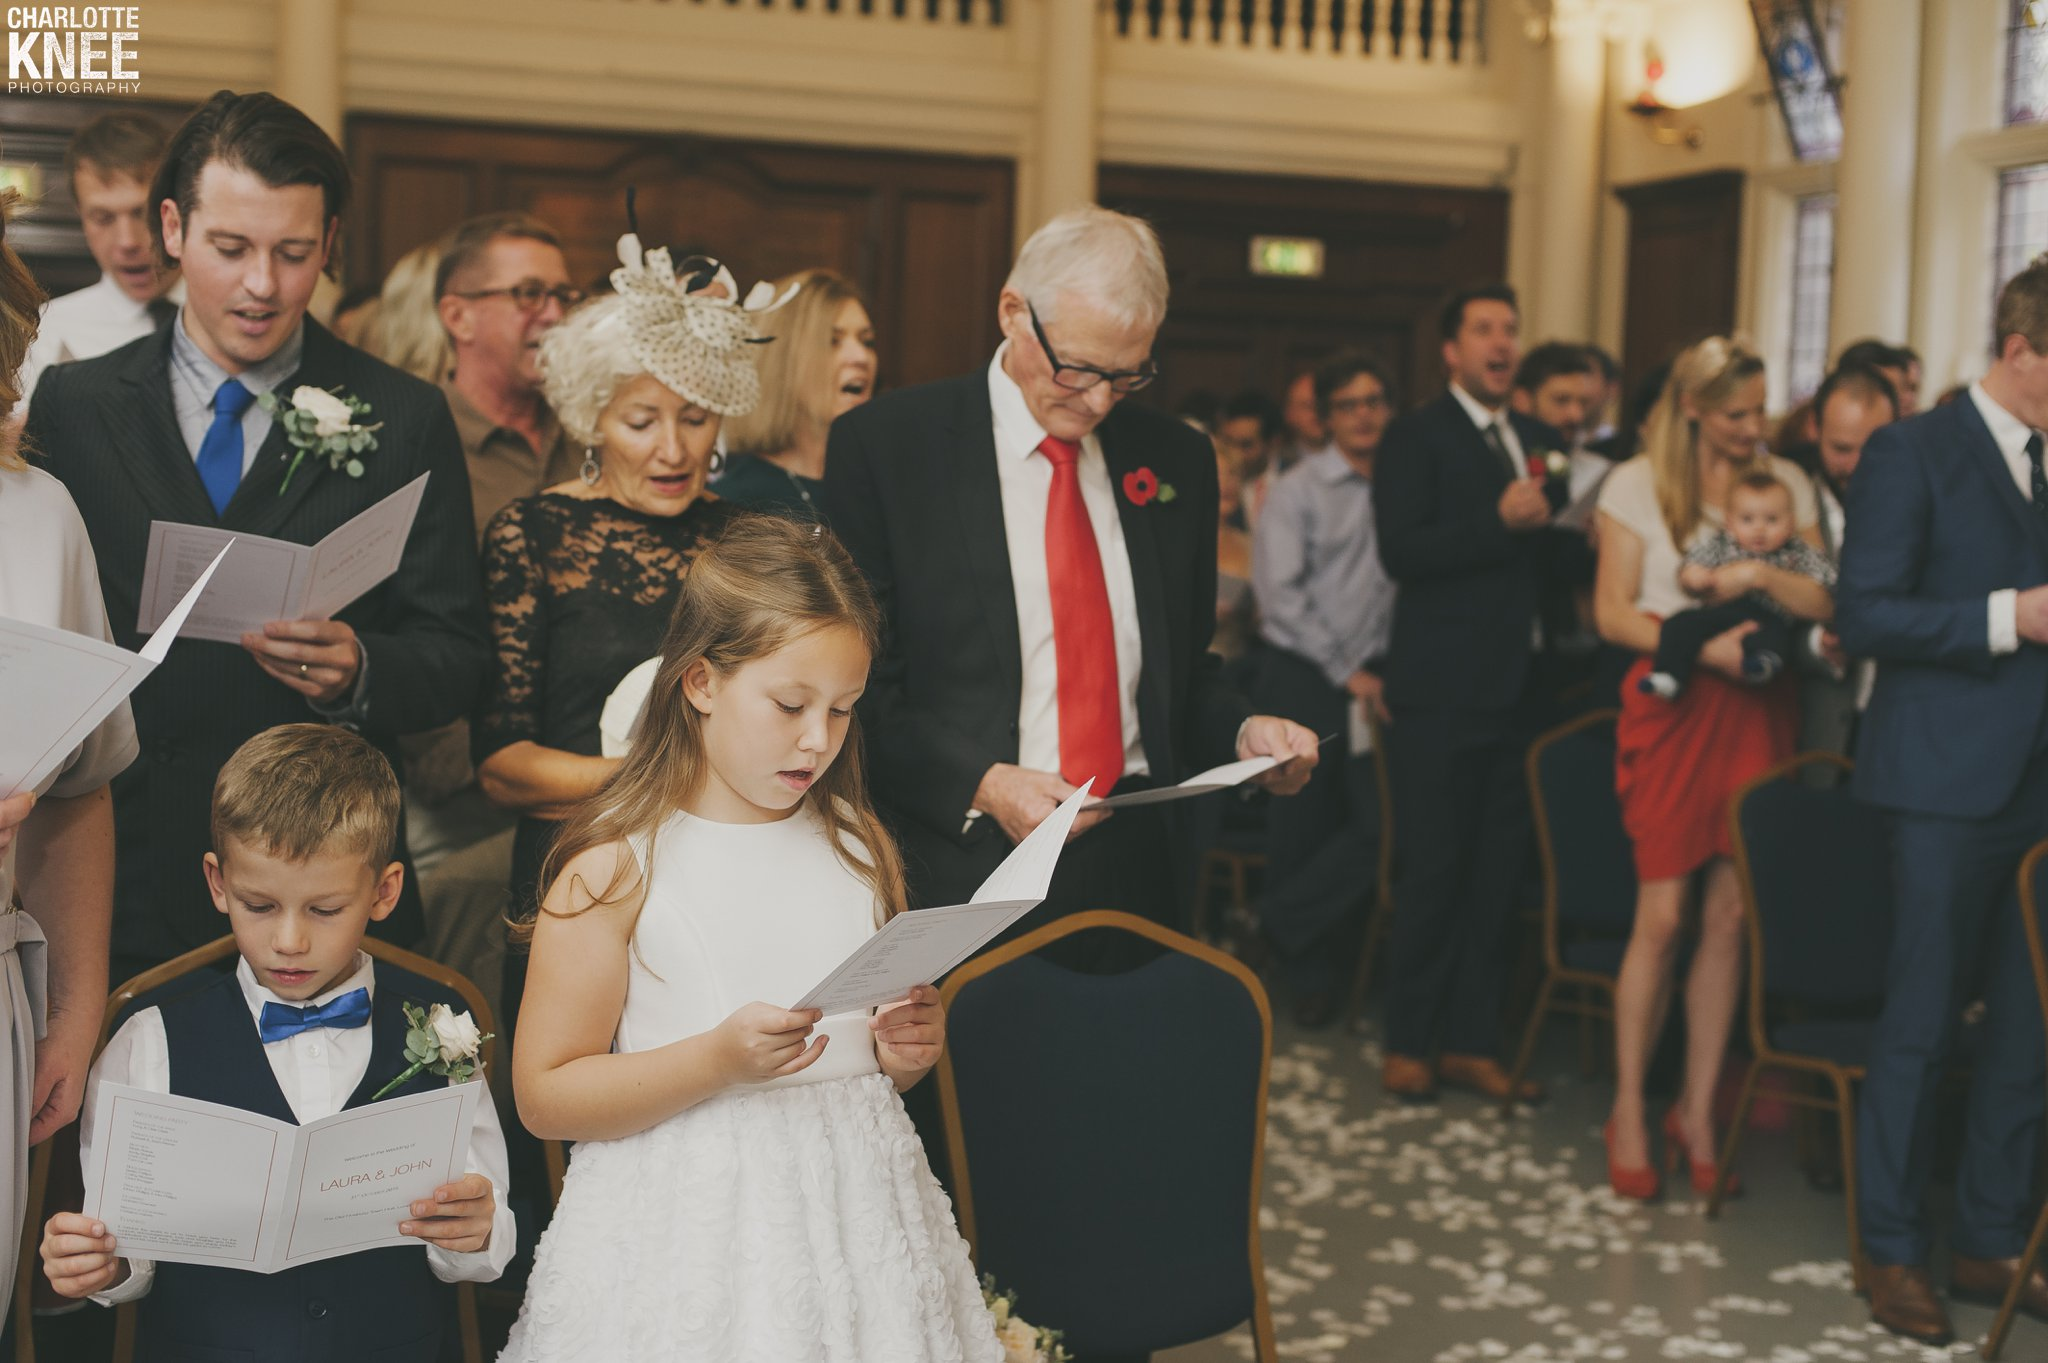 London Wedding Finsbury Town Hall Copyright Charlotte Knee Photography_0070.jpg